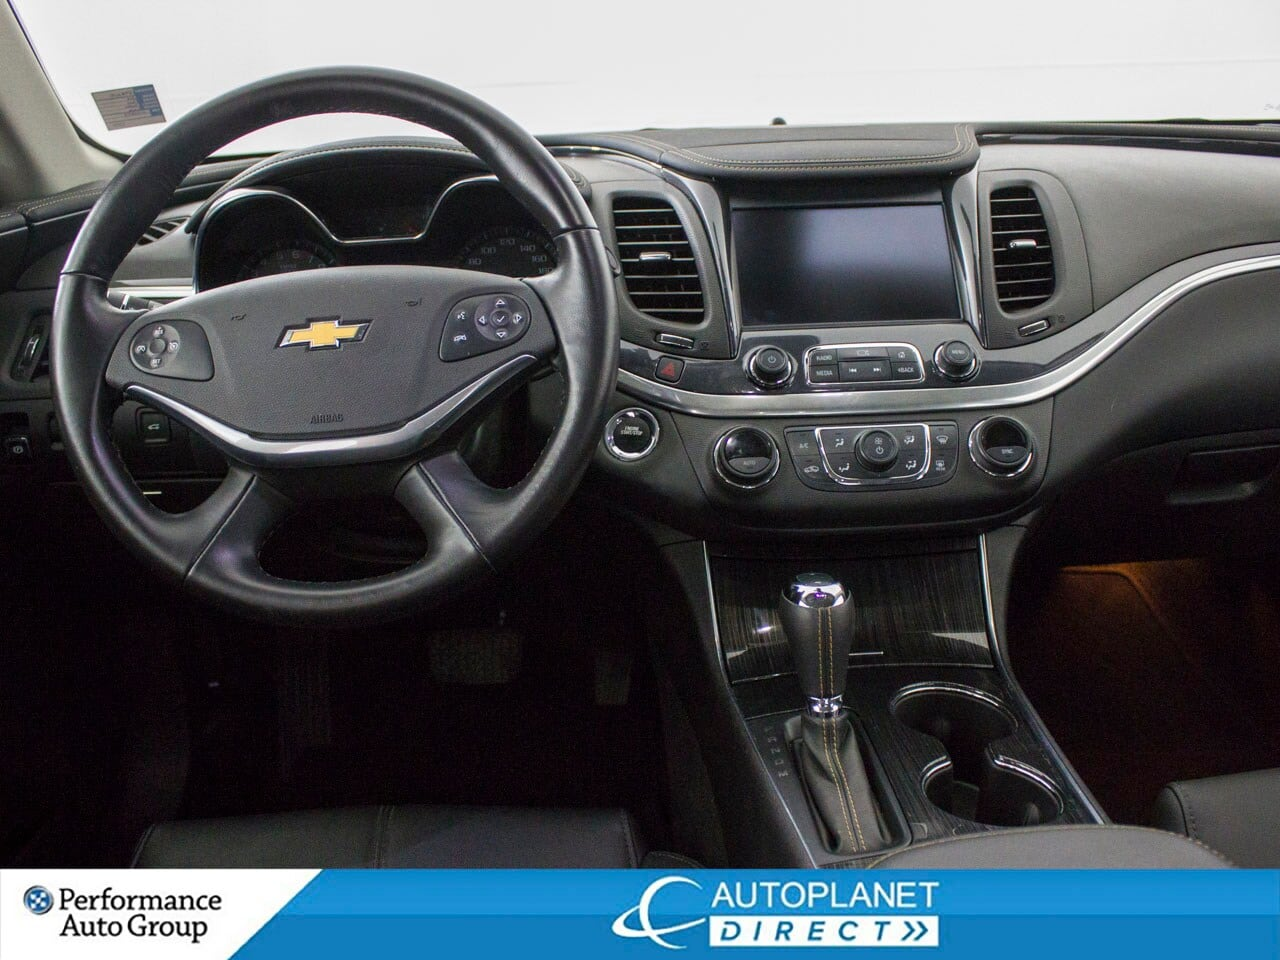 Used 2018 Chevrolet Impala For Sale at Performance Auto